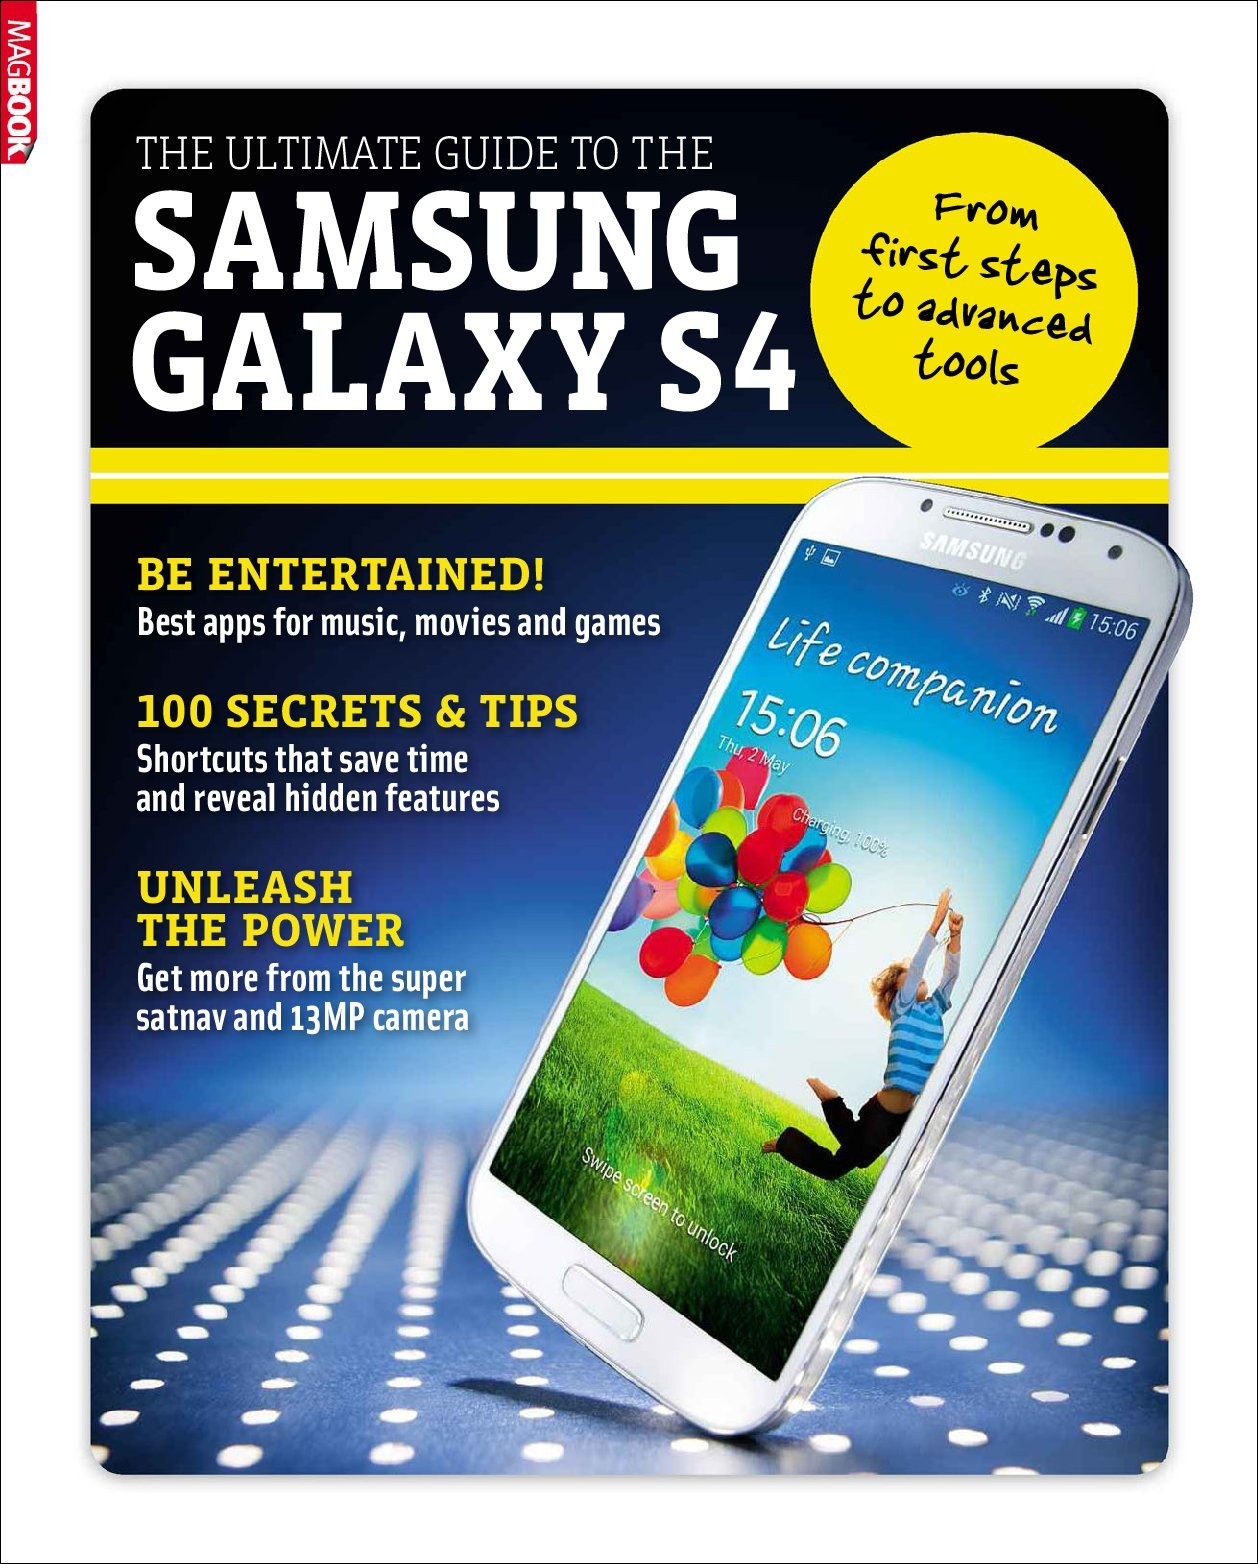 The Ultimate Guide To The Samsung Galaxy S4 (Digital)